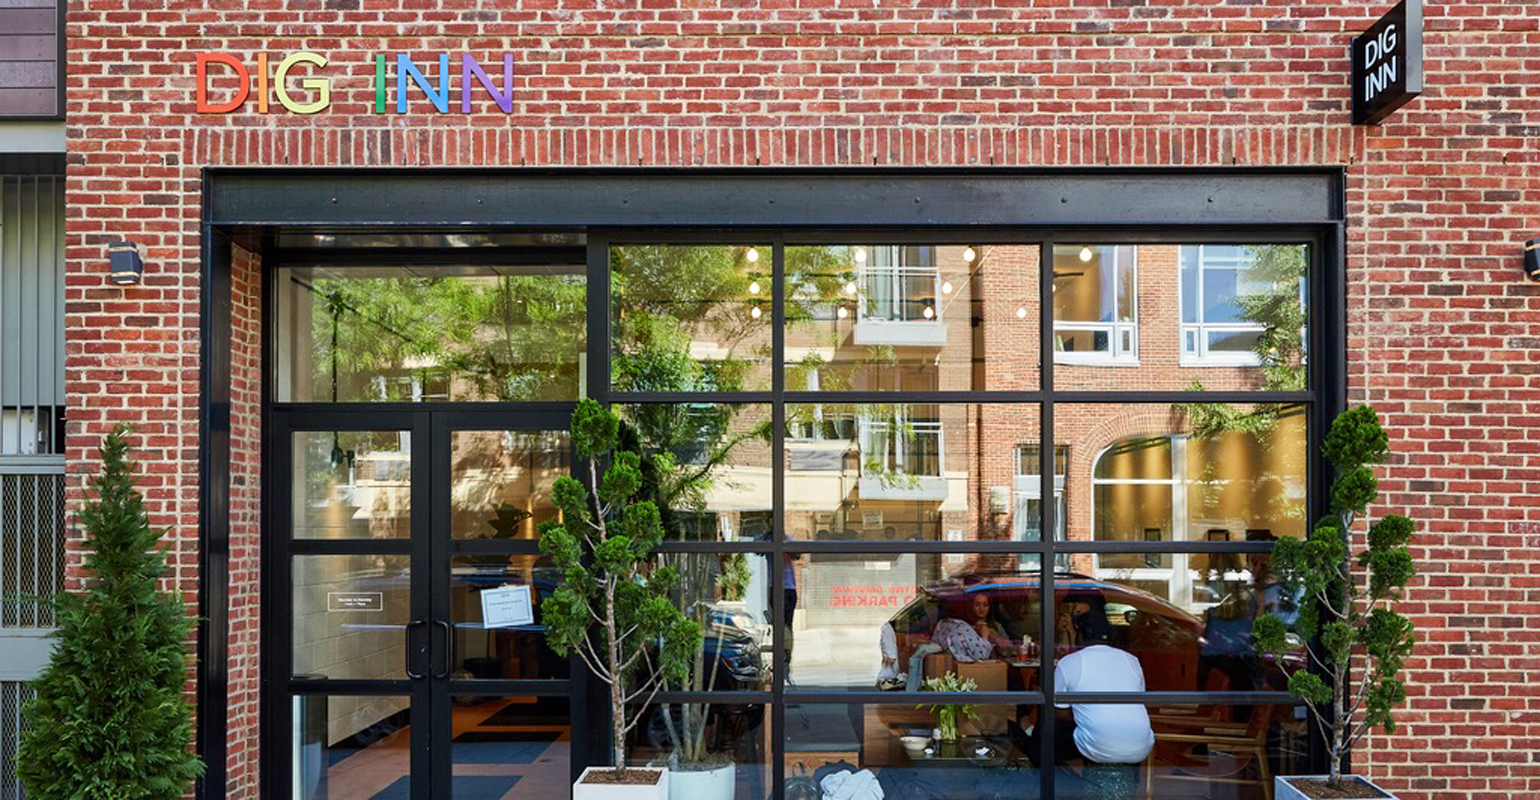 Dig Inn receives $15M investment from Danny Meyer firm